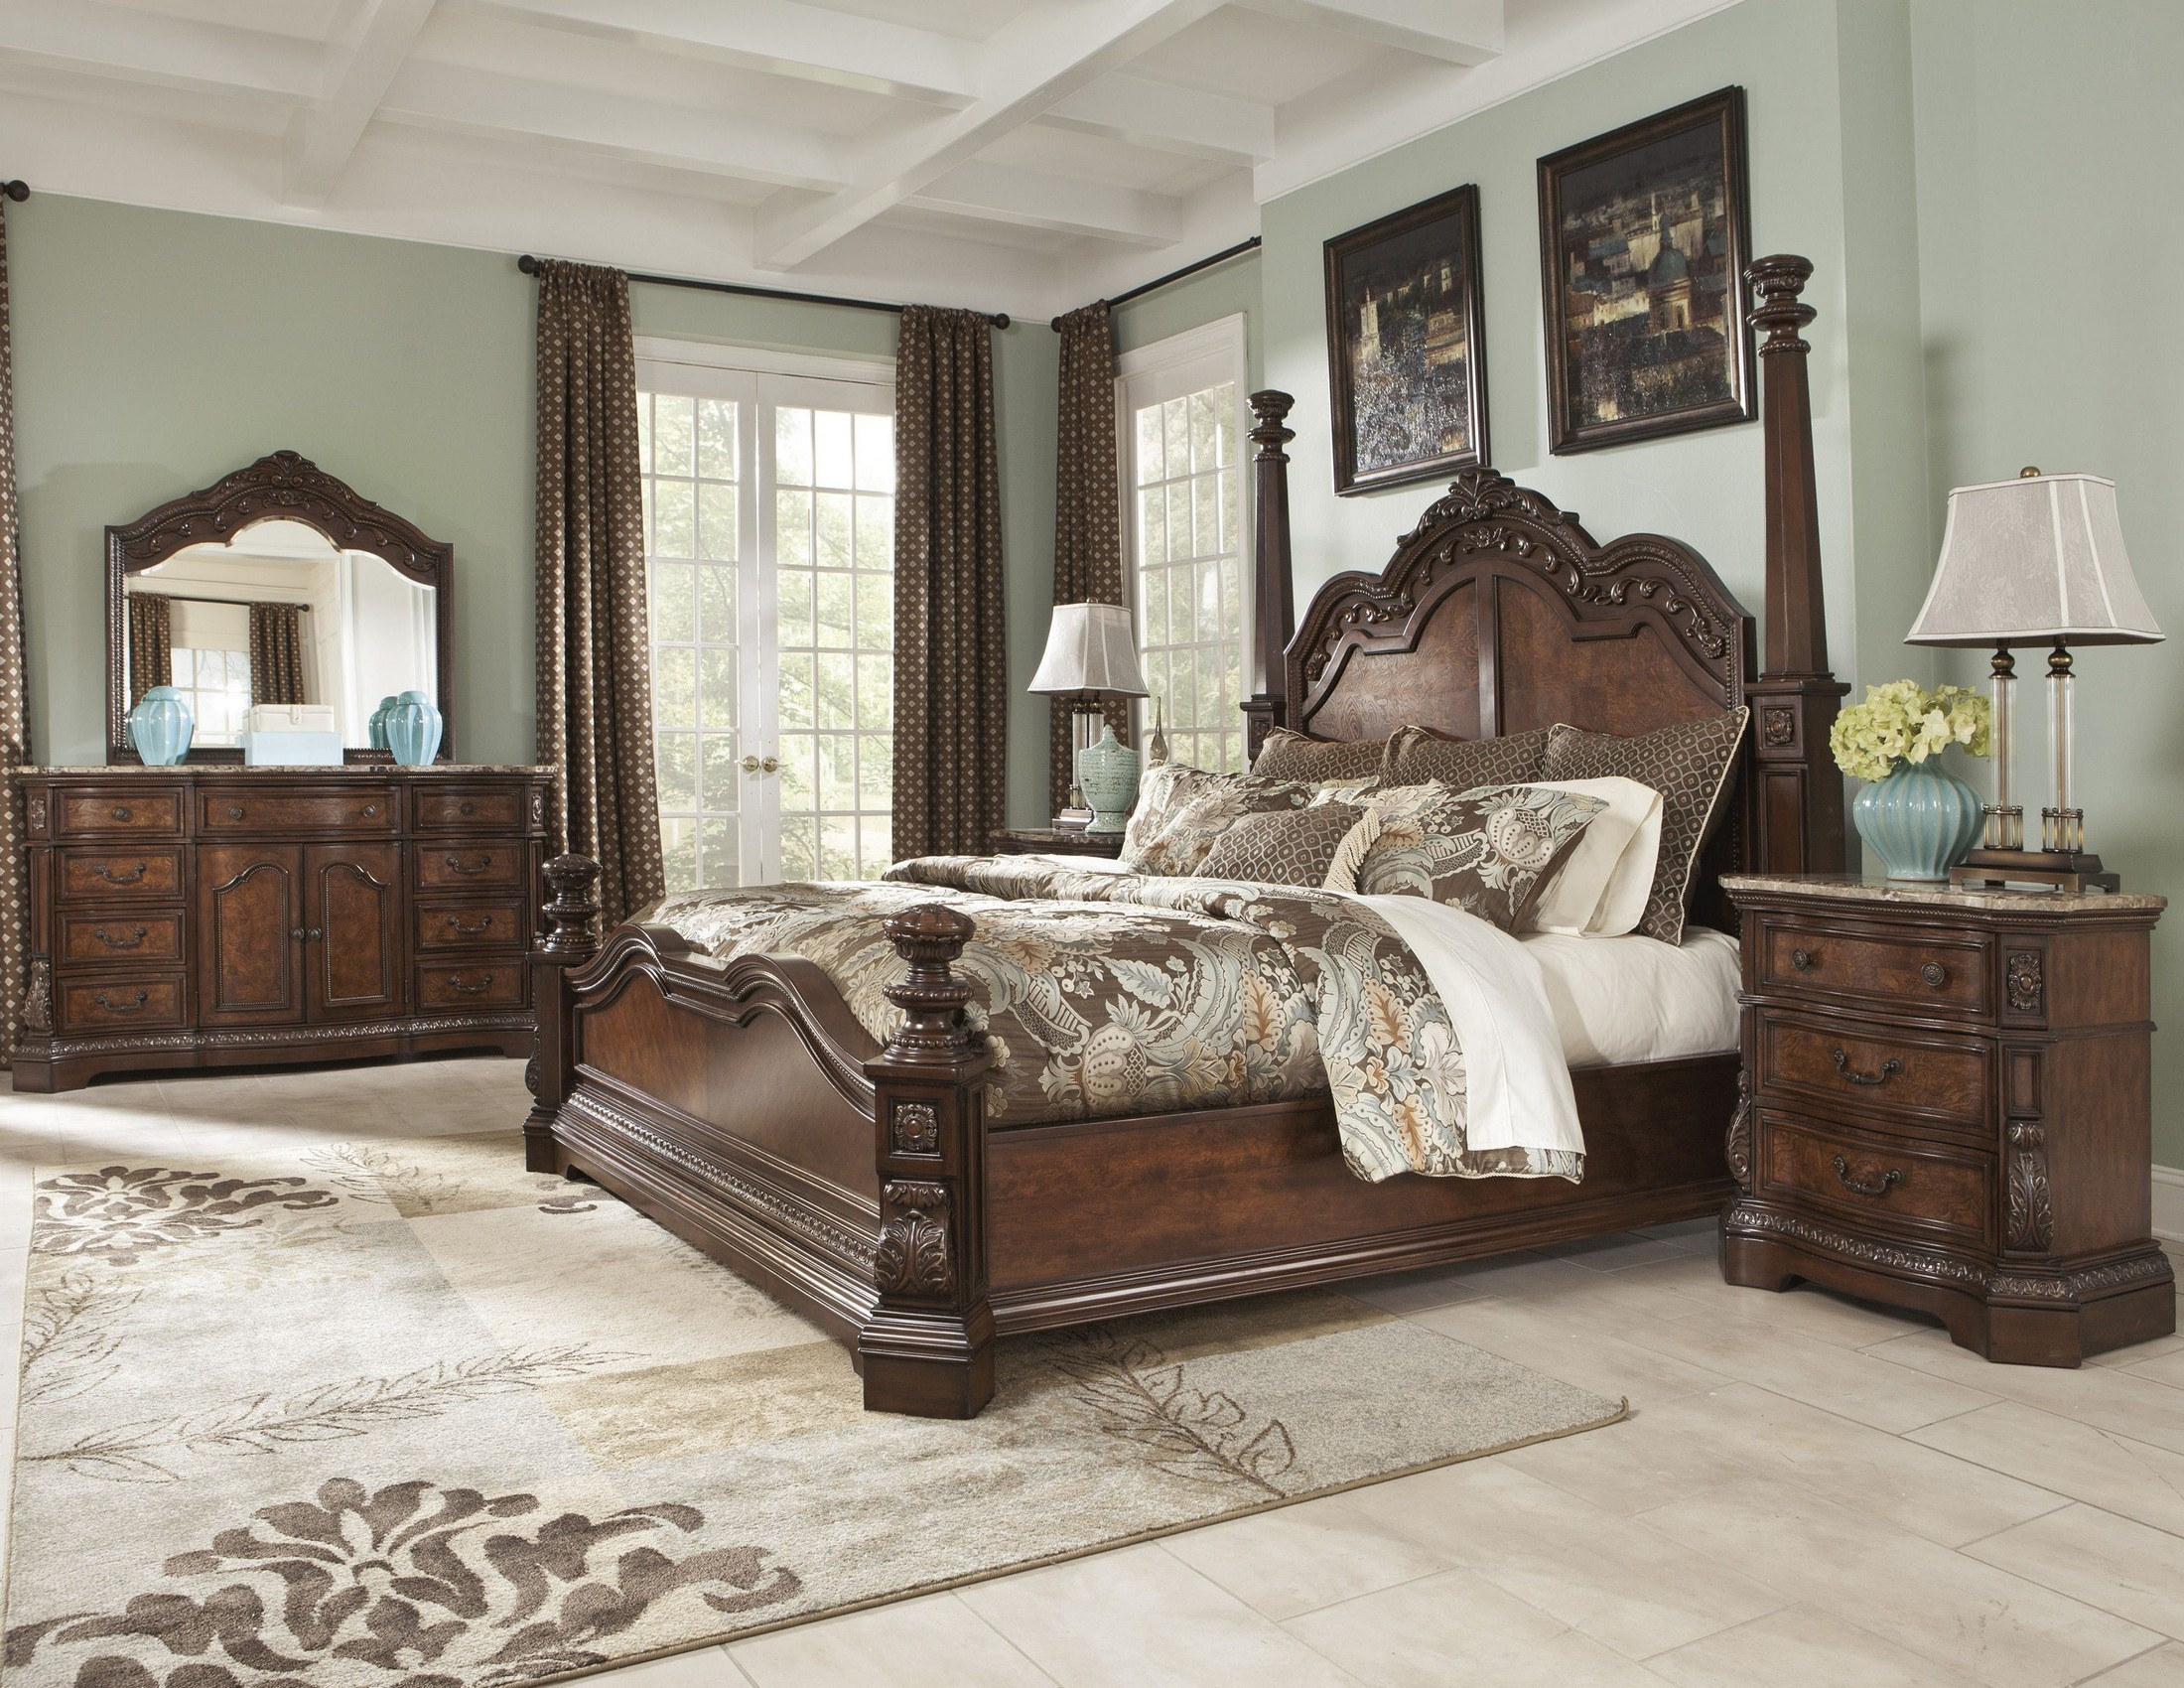 Ledelle Poster Bedroom Set from Ashley (B705-51-71-98) | Coleman ...